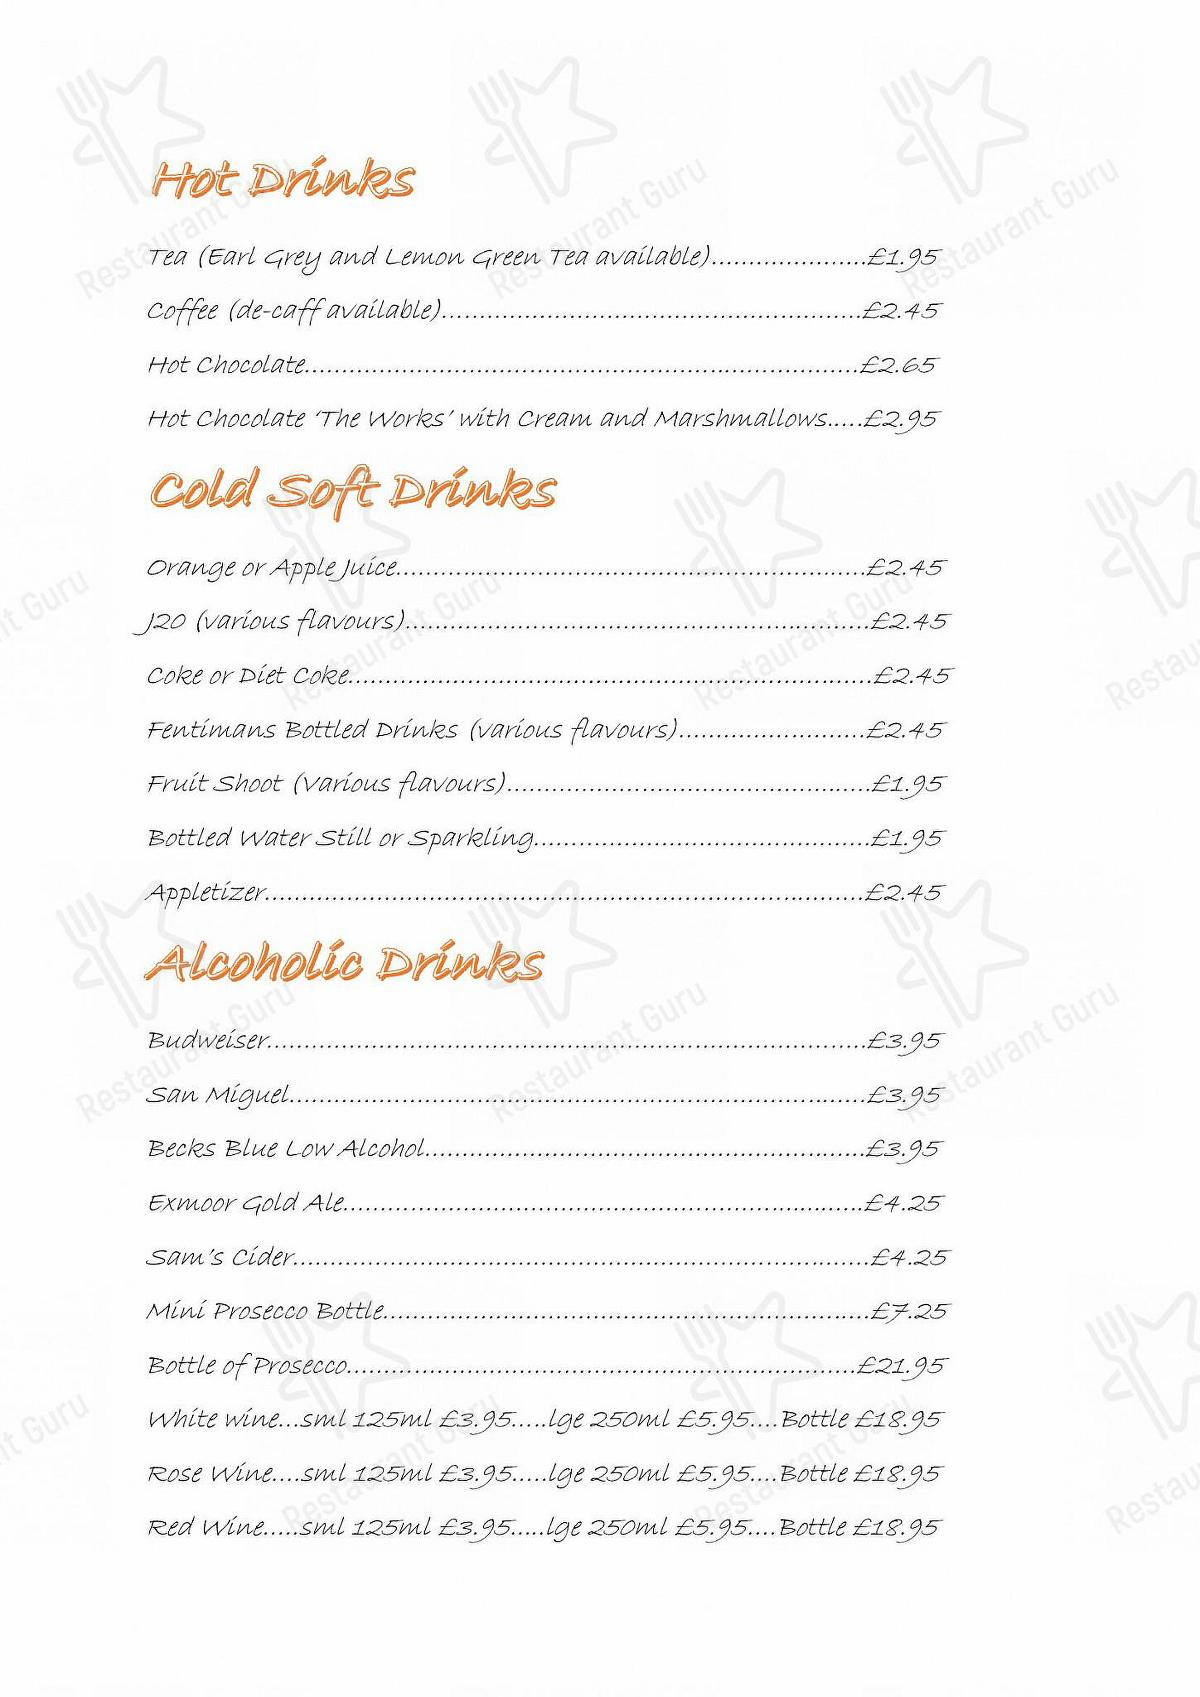 S & P Fish Shop menu - dishes and beverages